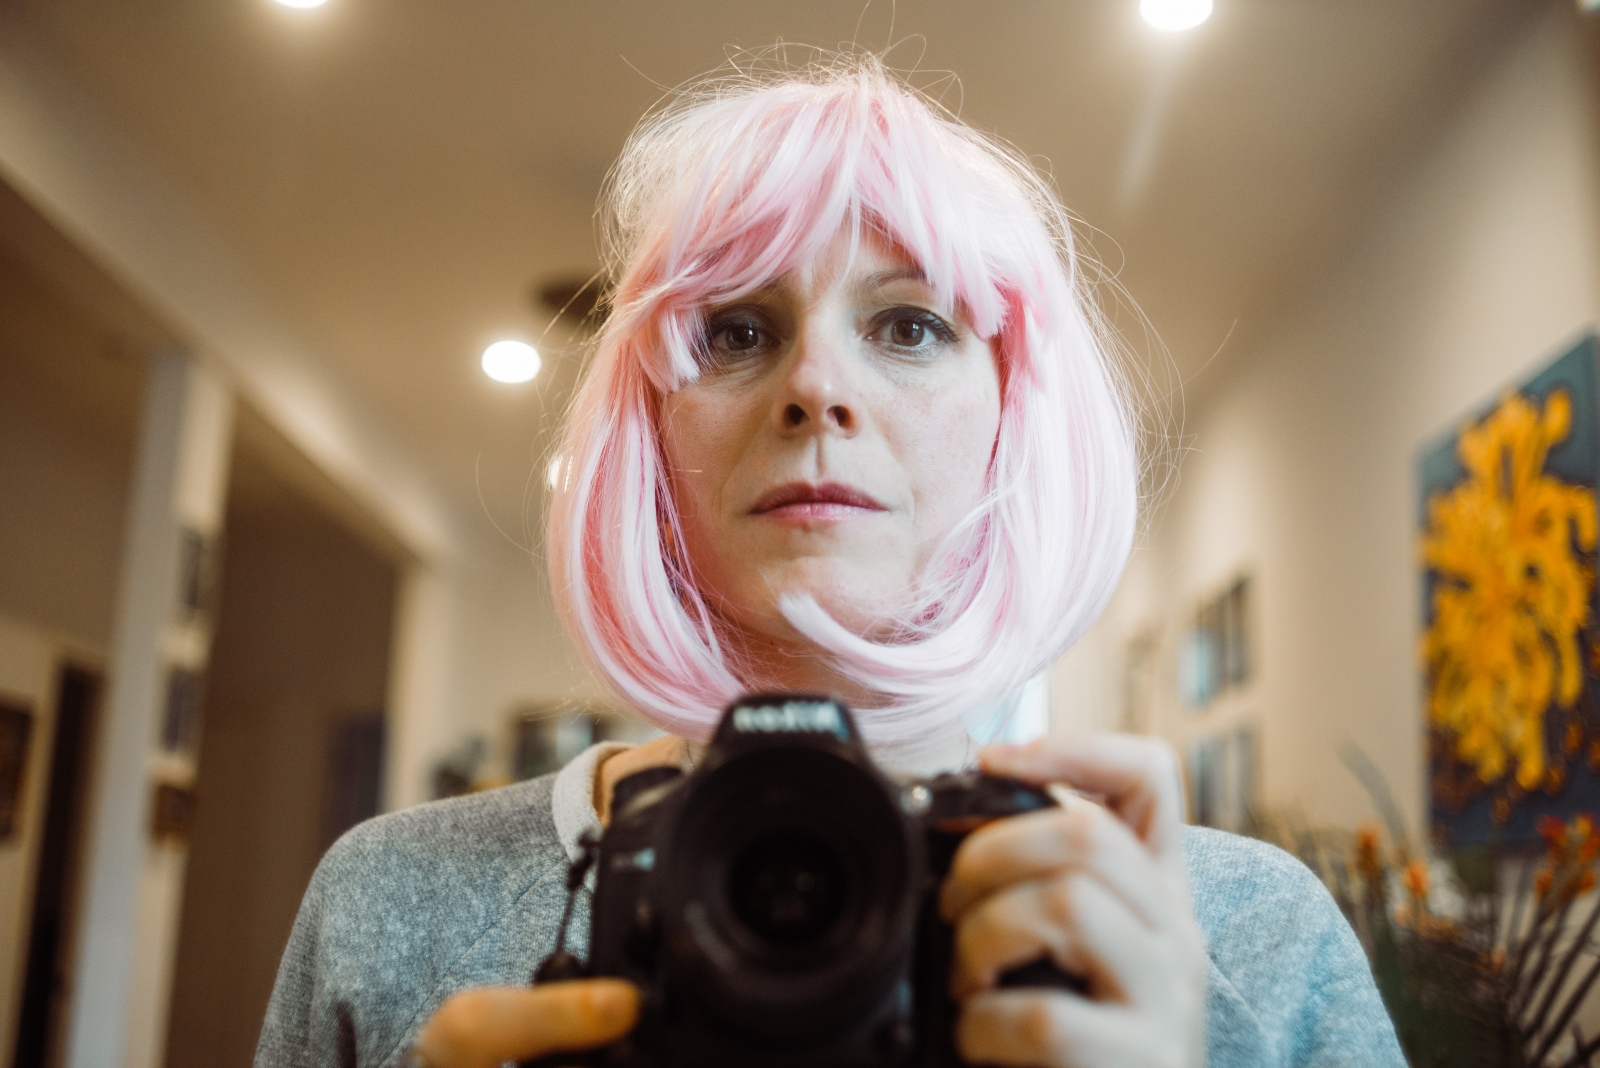 Anna tries on a pink wig she purchased along with four other colors. She would never actually wear any of the wigs during the course of treatment, opting instead for head scarves and hats.